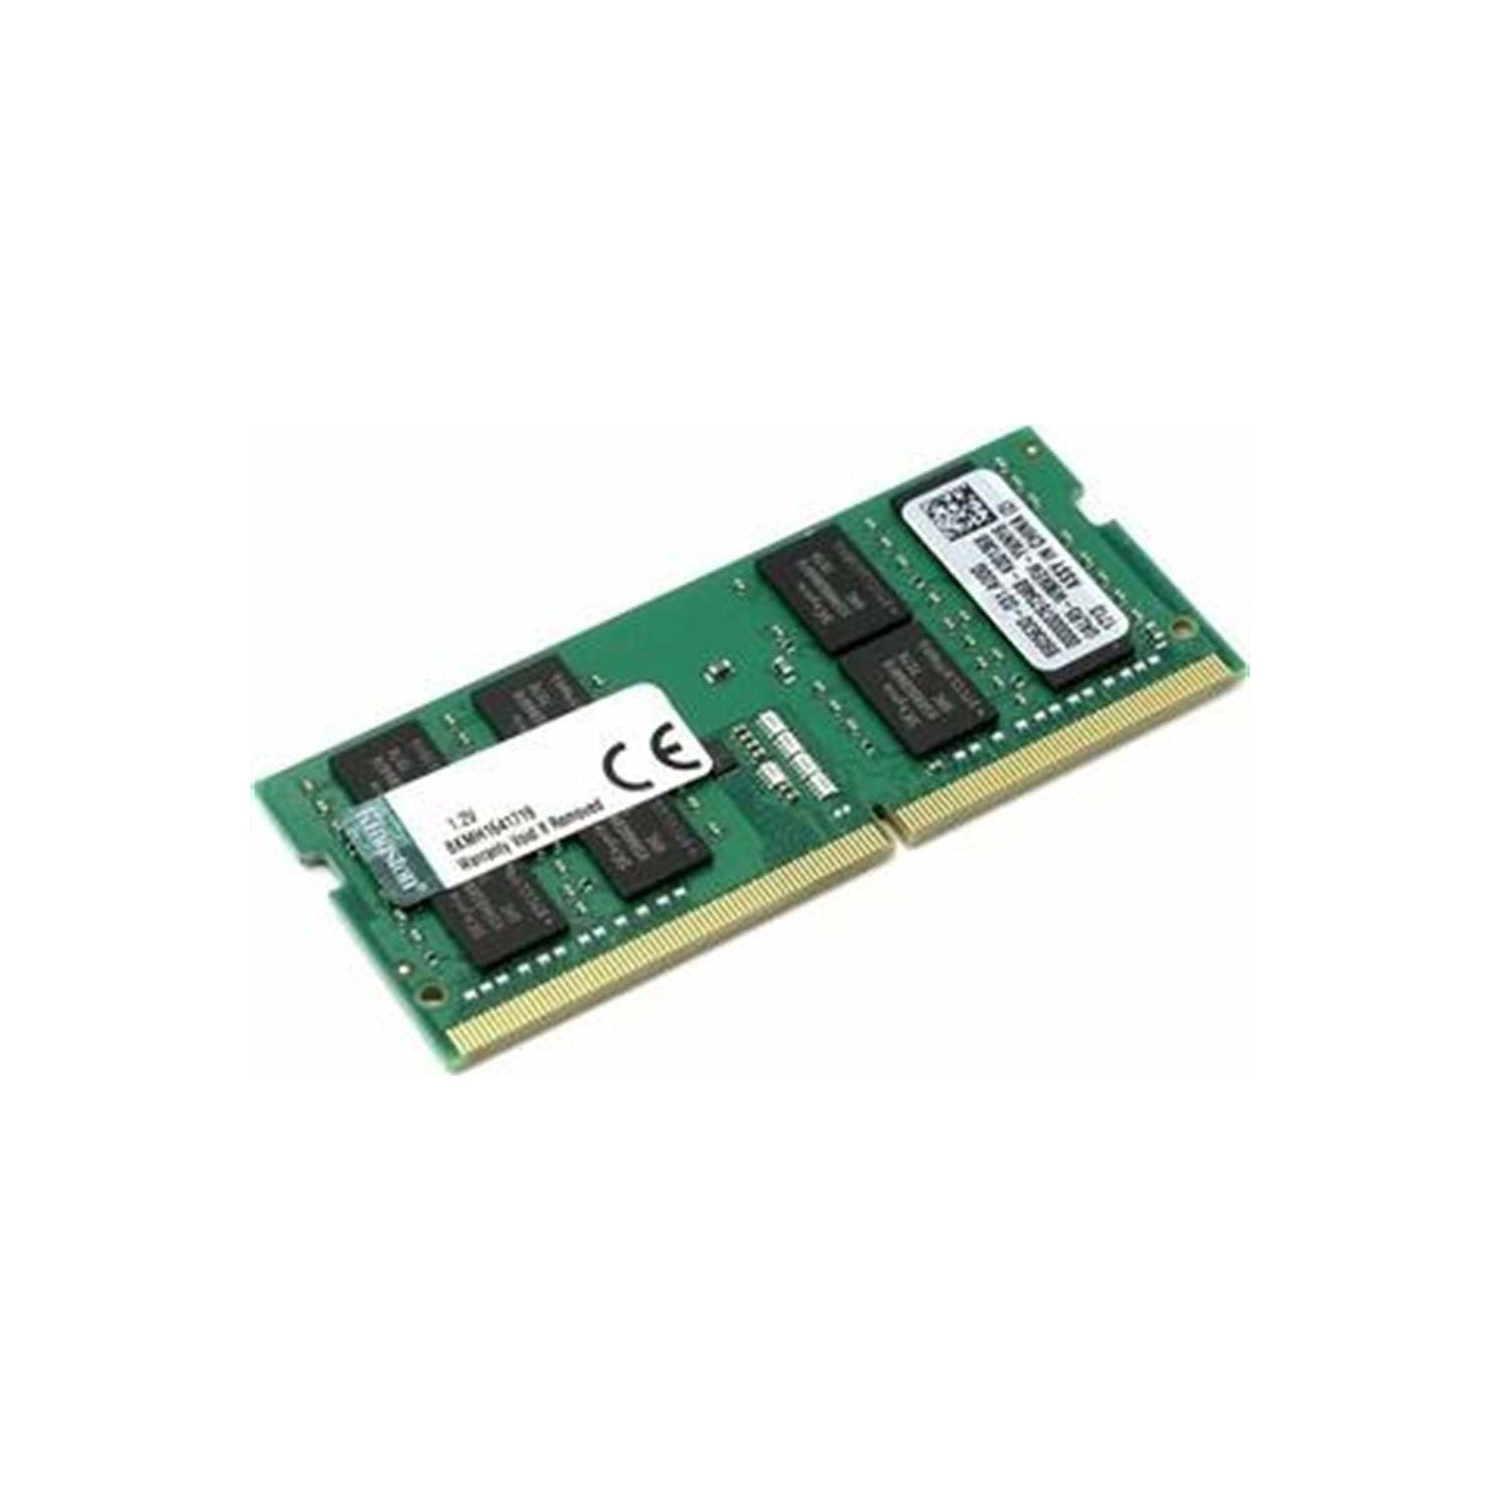 KINGSTON 16GB 2666MHZ DDR4 KVR26S19D8-16 BELLEK NOTEBOOK RAM